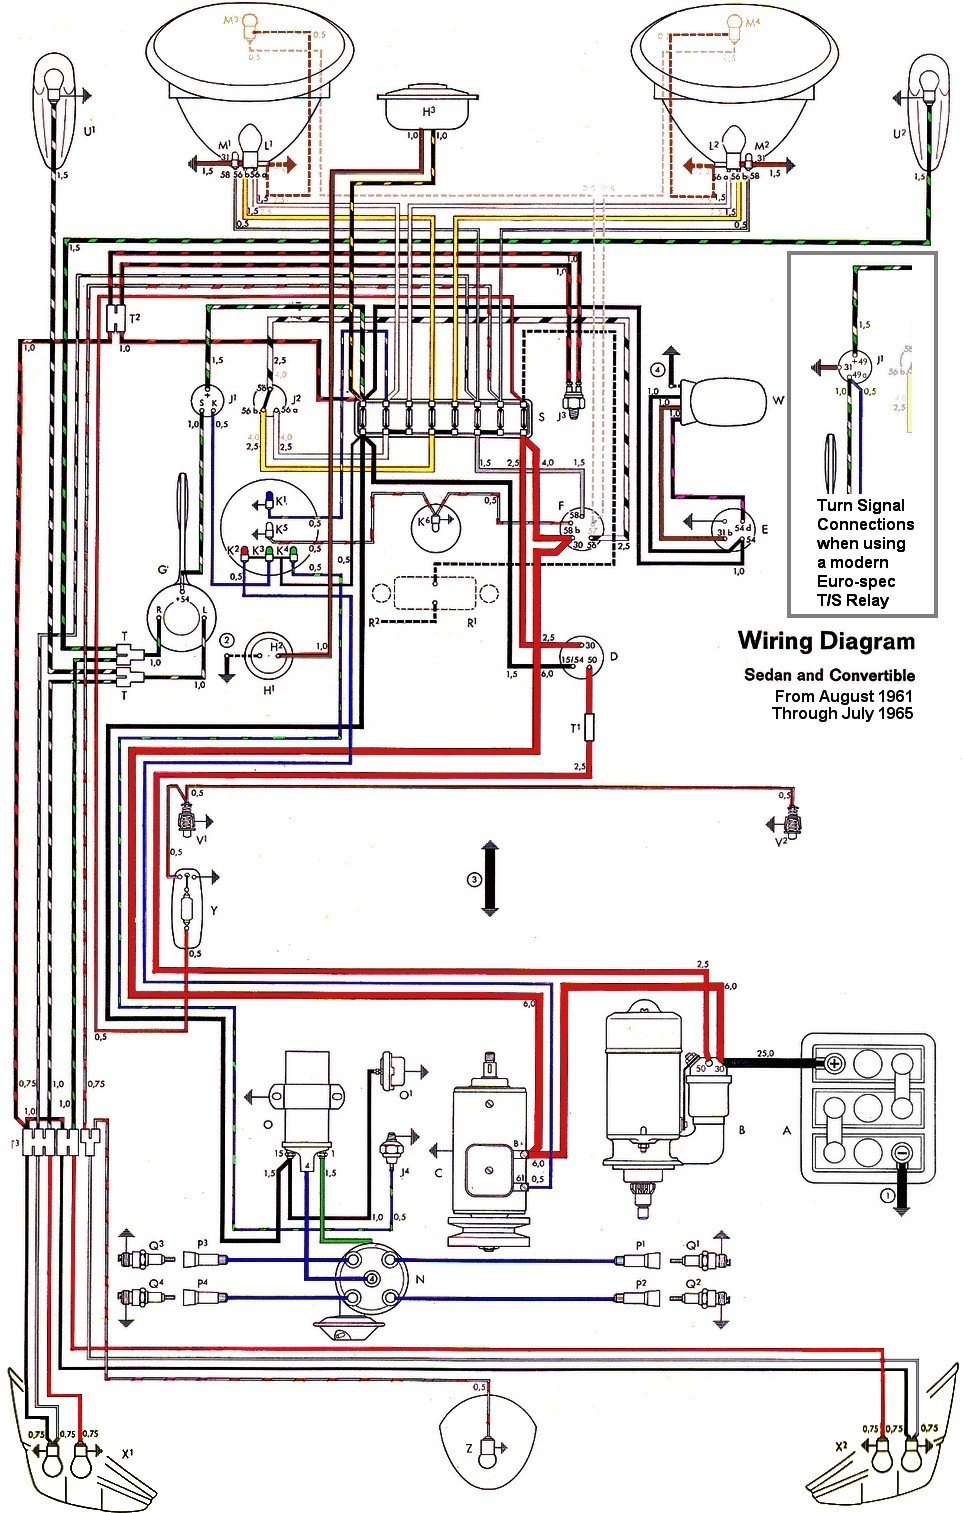 bug_62 65withinset thesamba com type 1 wiring diagrams vw bug wiring diagram at cos-gaming.co